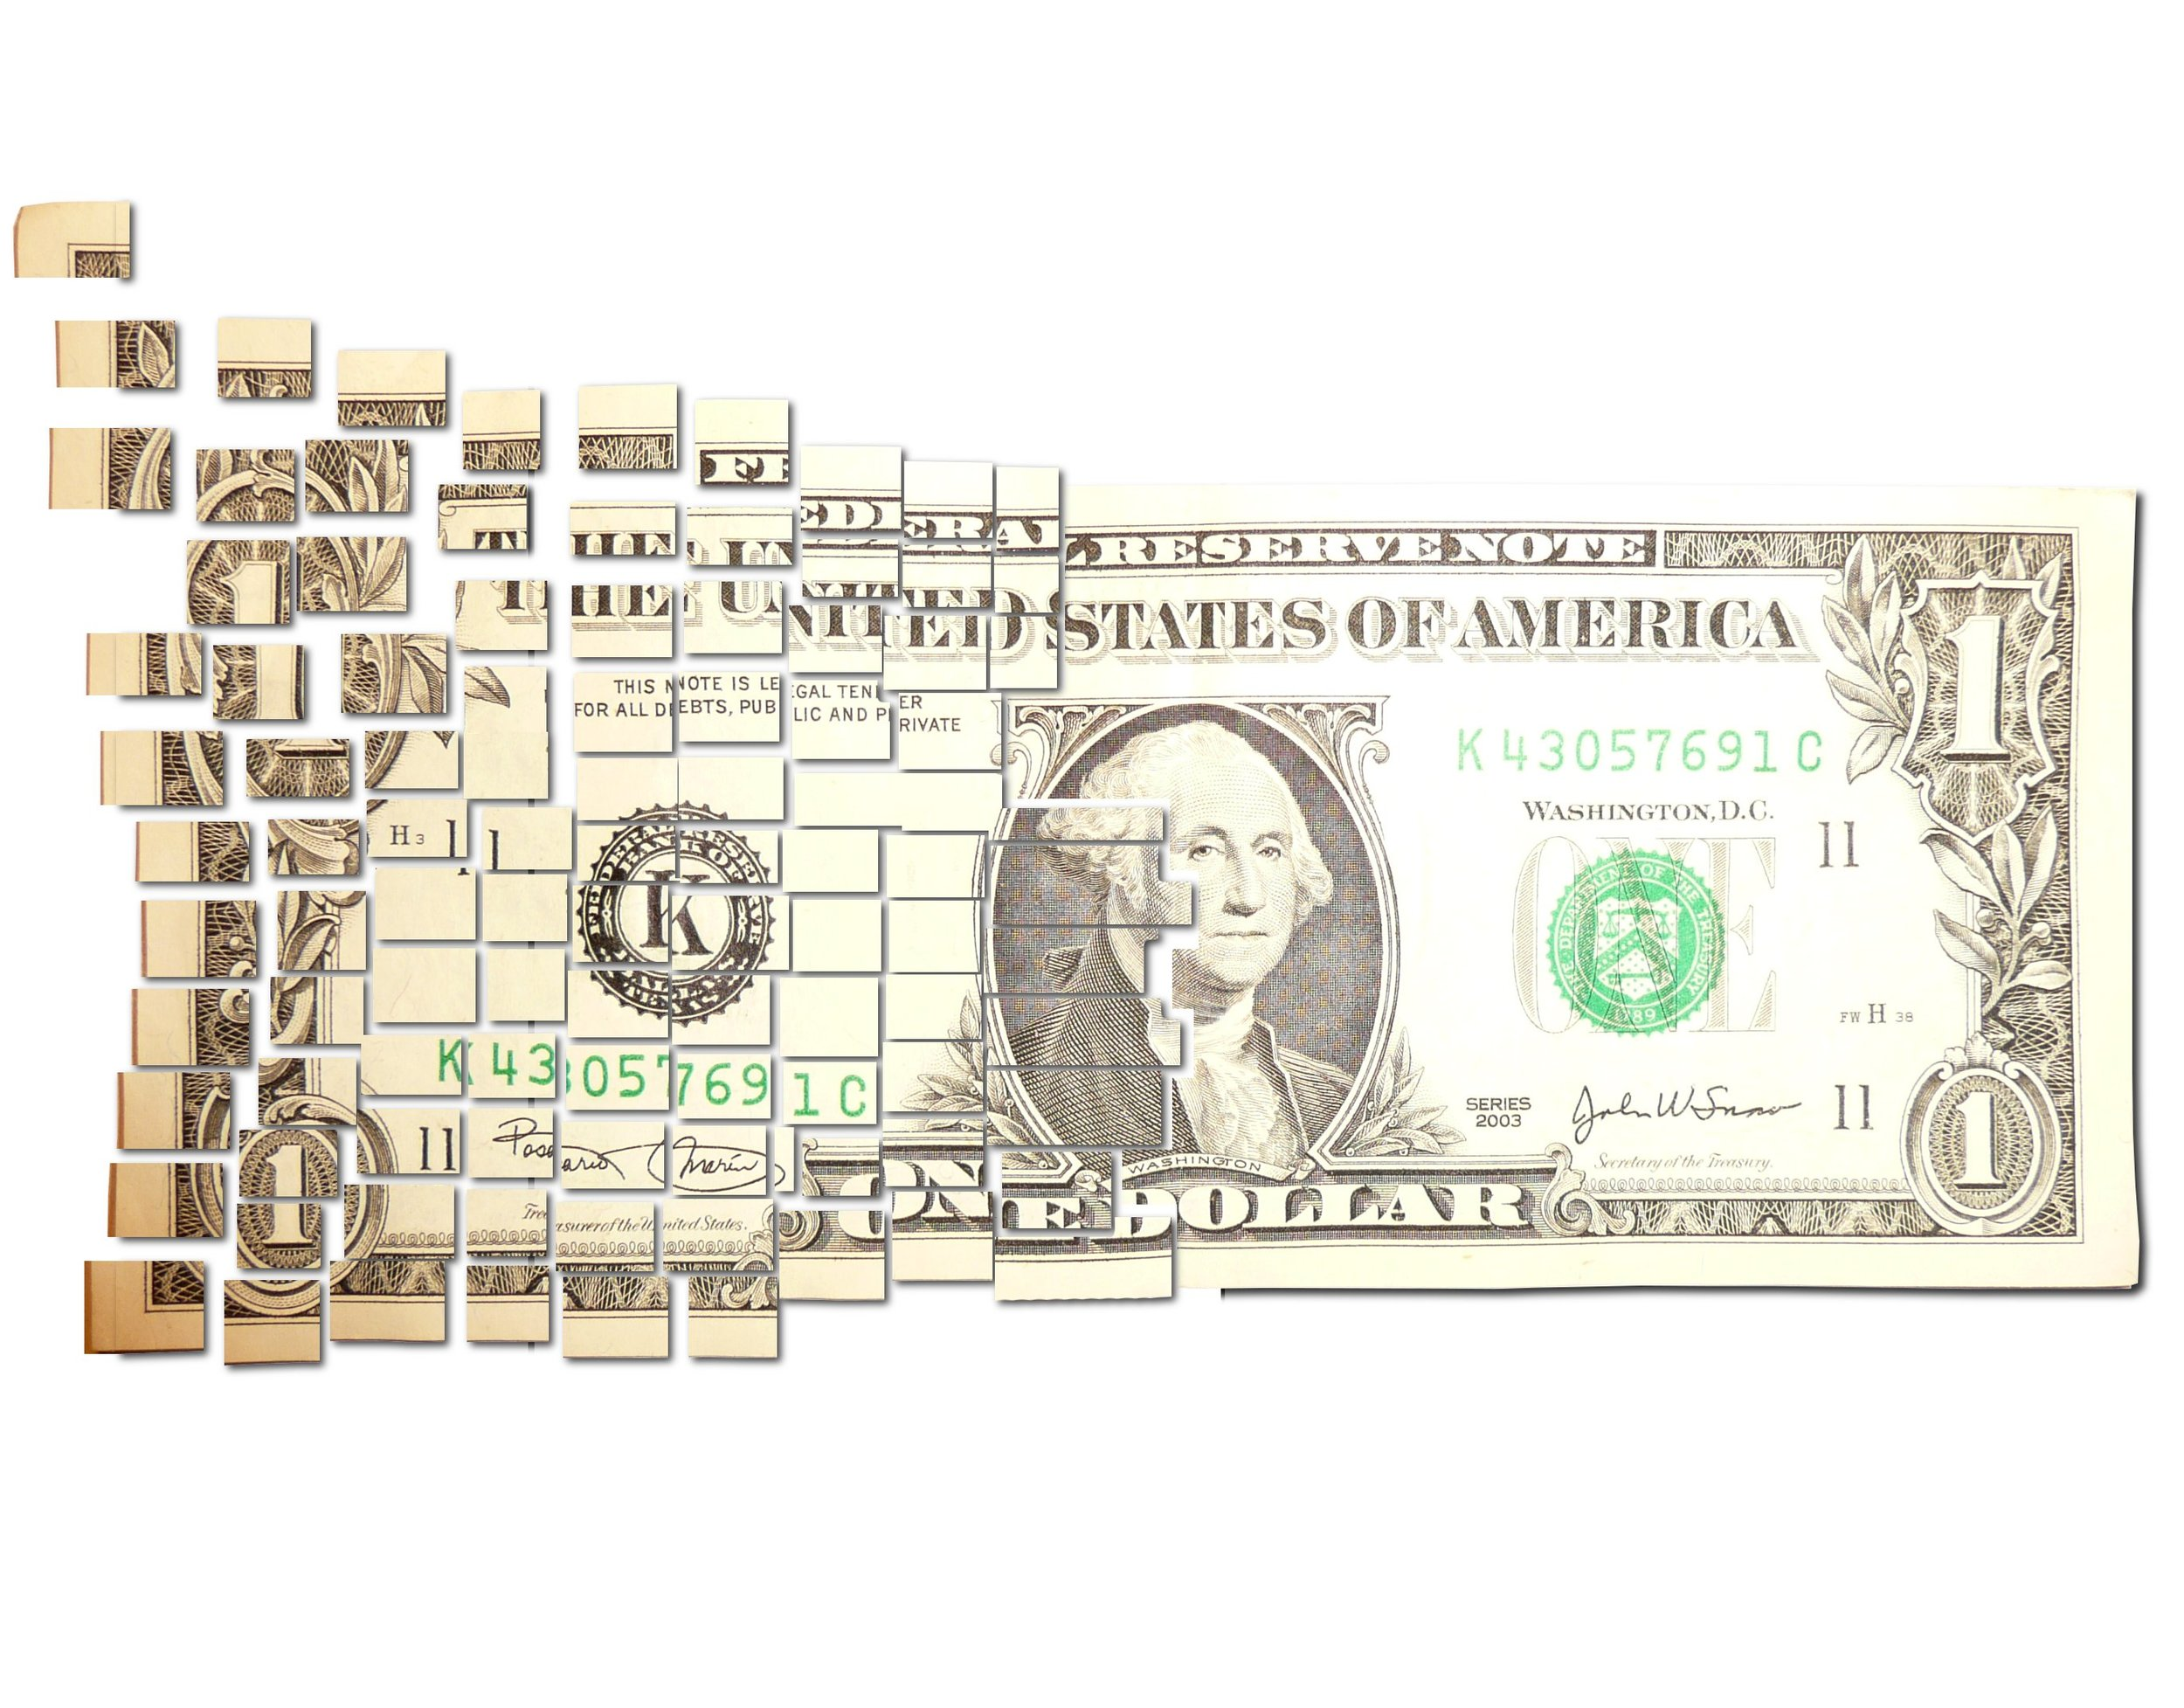 """"""" Torn & Cut One Dollar Note Floating Away in Small $ Pieces """" by PhotoSteve101  (CC BY 2.0)"""